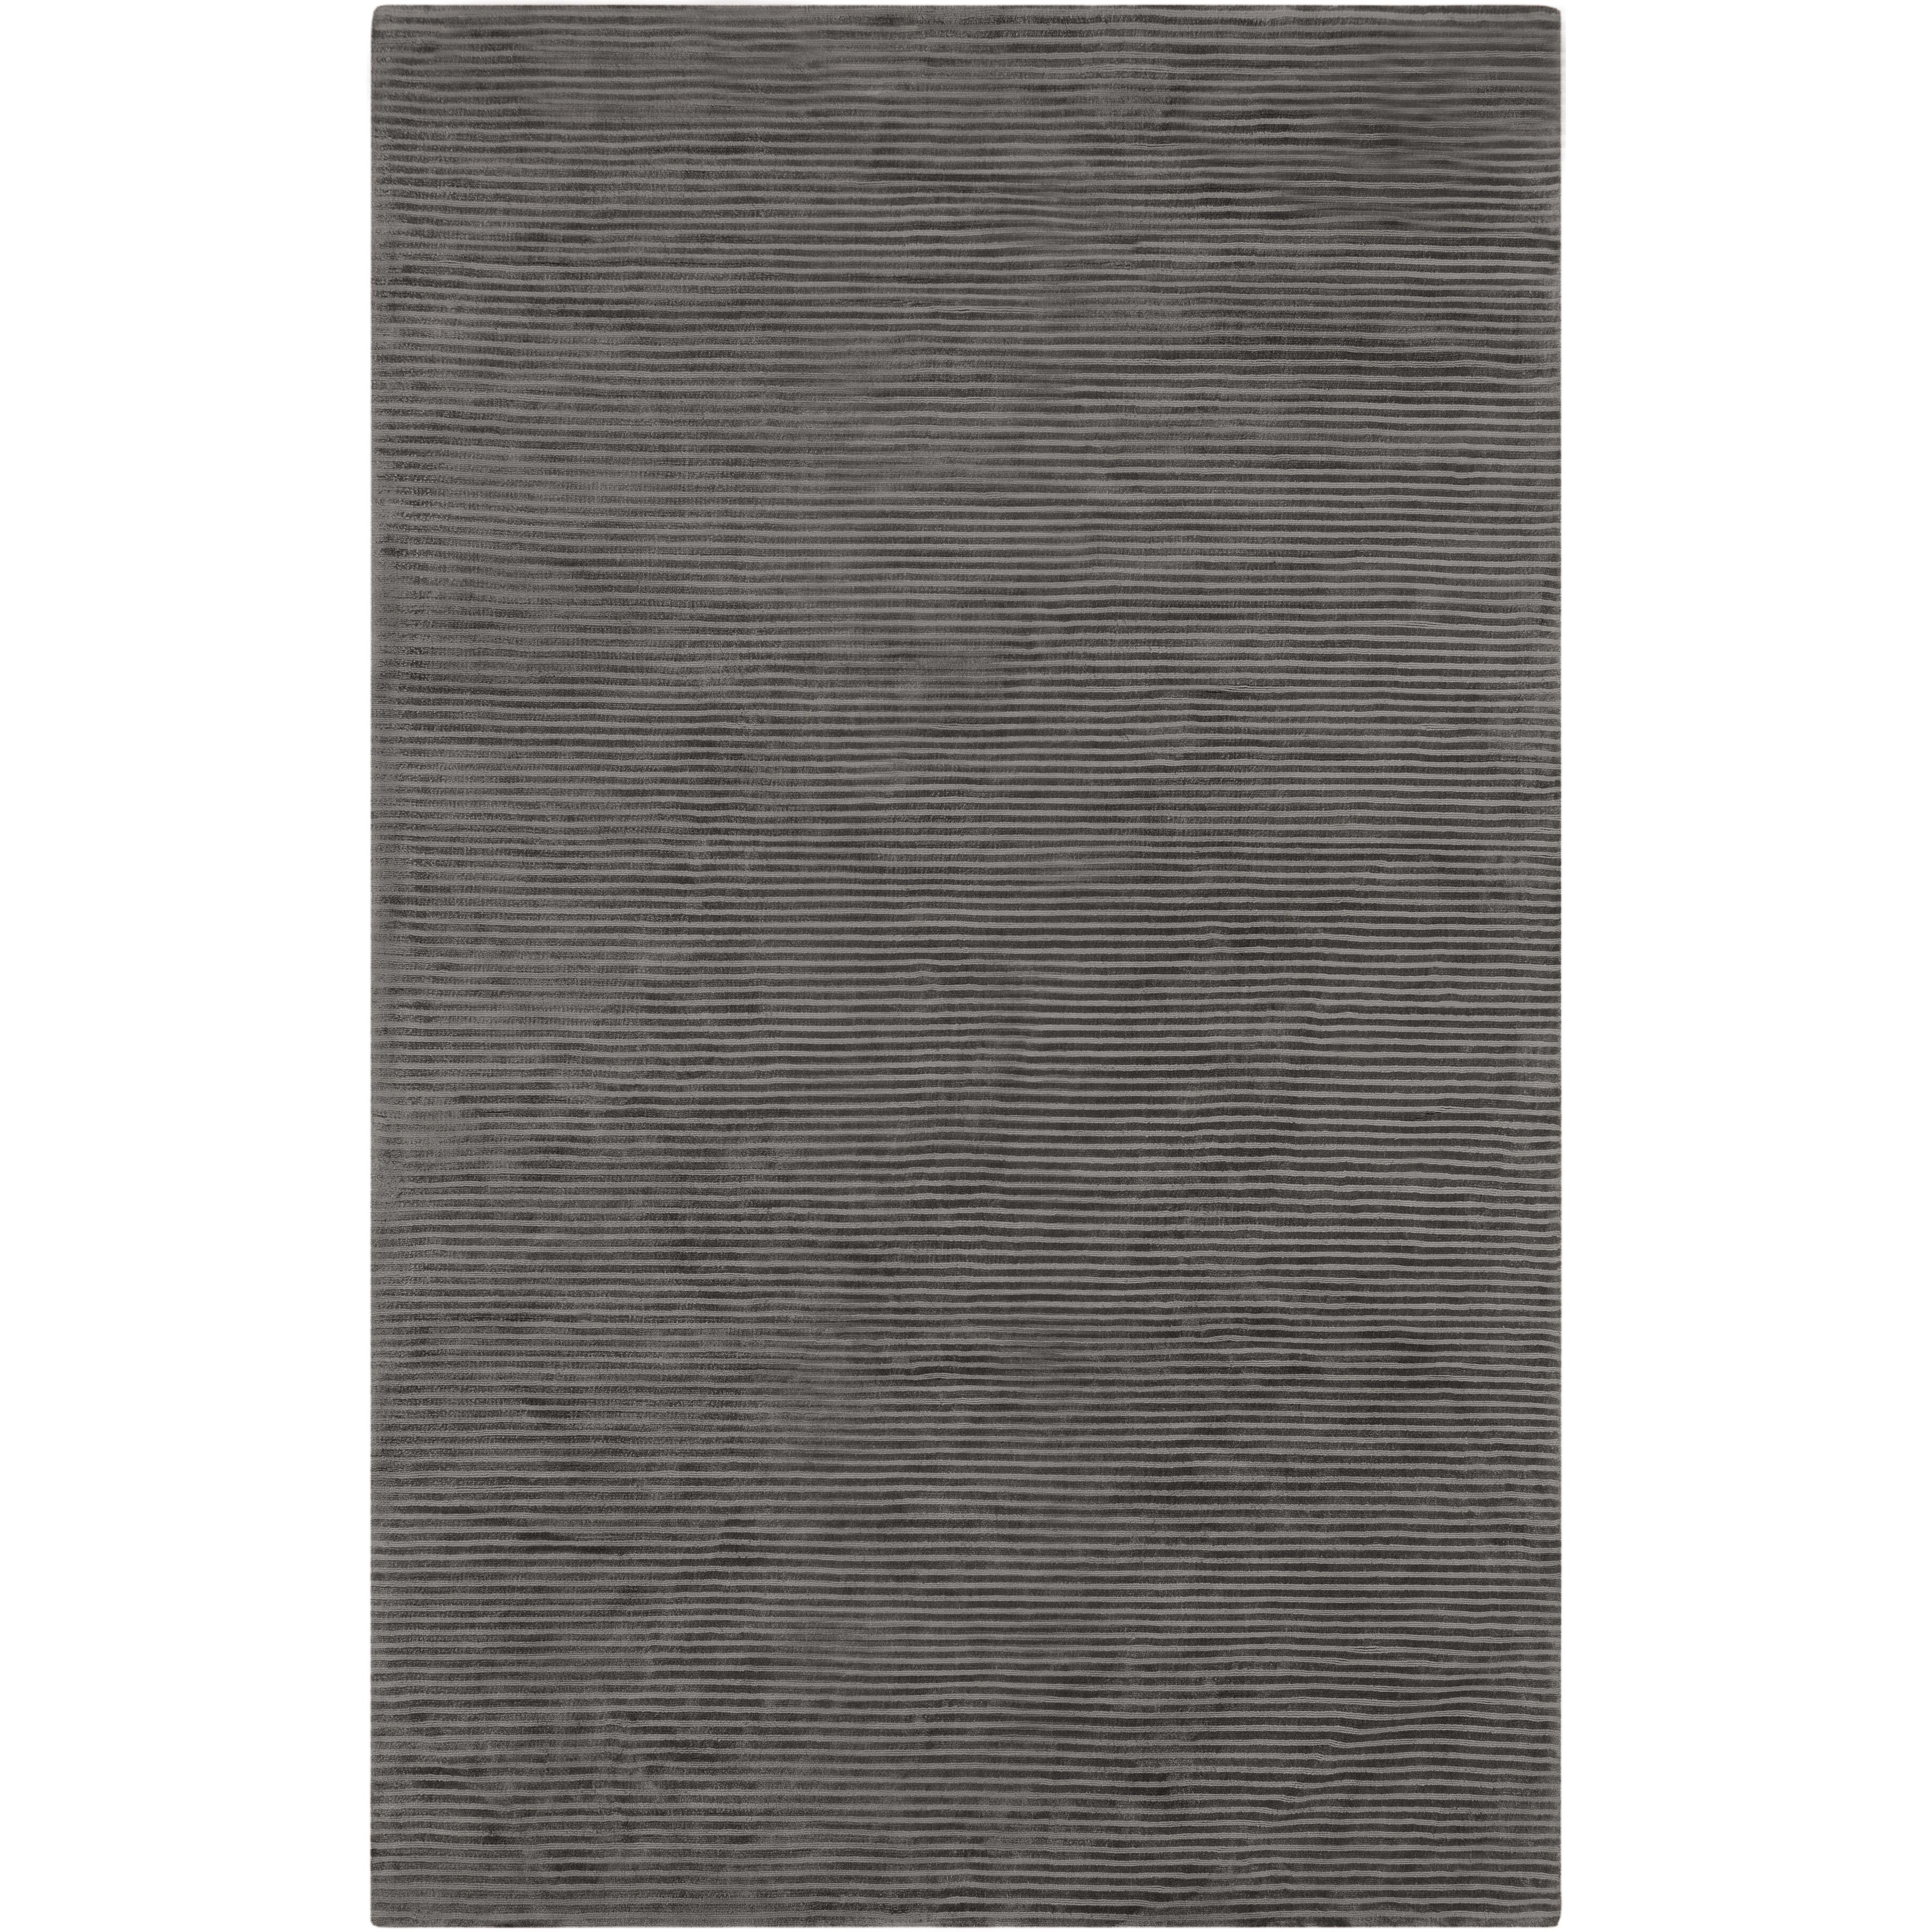 Graphite 8' x 11' by Ruby-Gordon Accents at Ruby Gordon Home